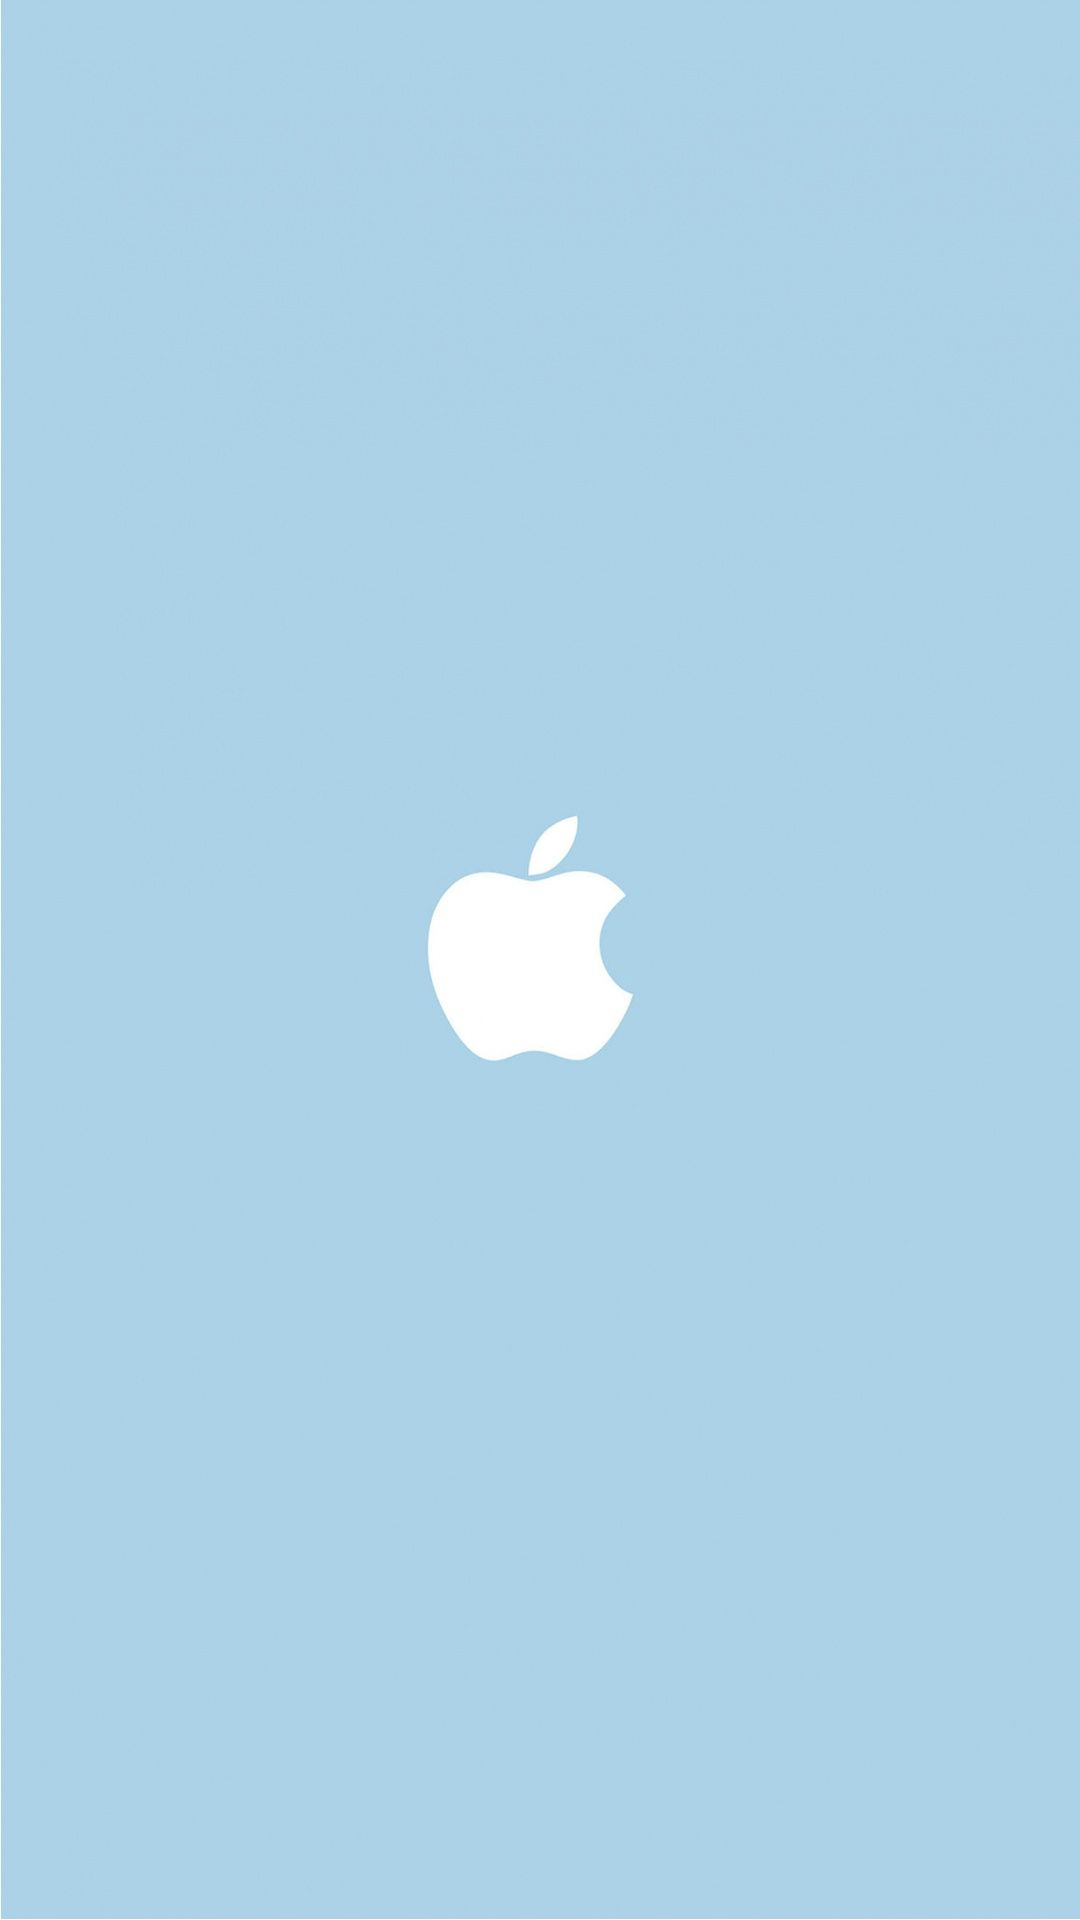 Apple Logo Iphone Wallpapers Top Free Apple Logo Iphone